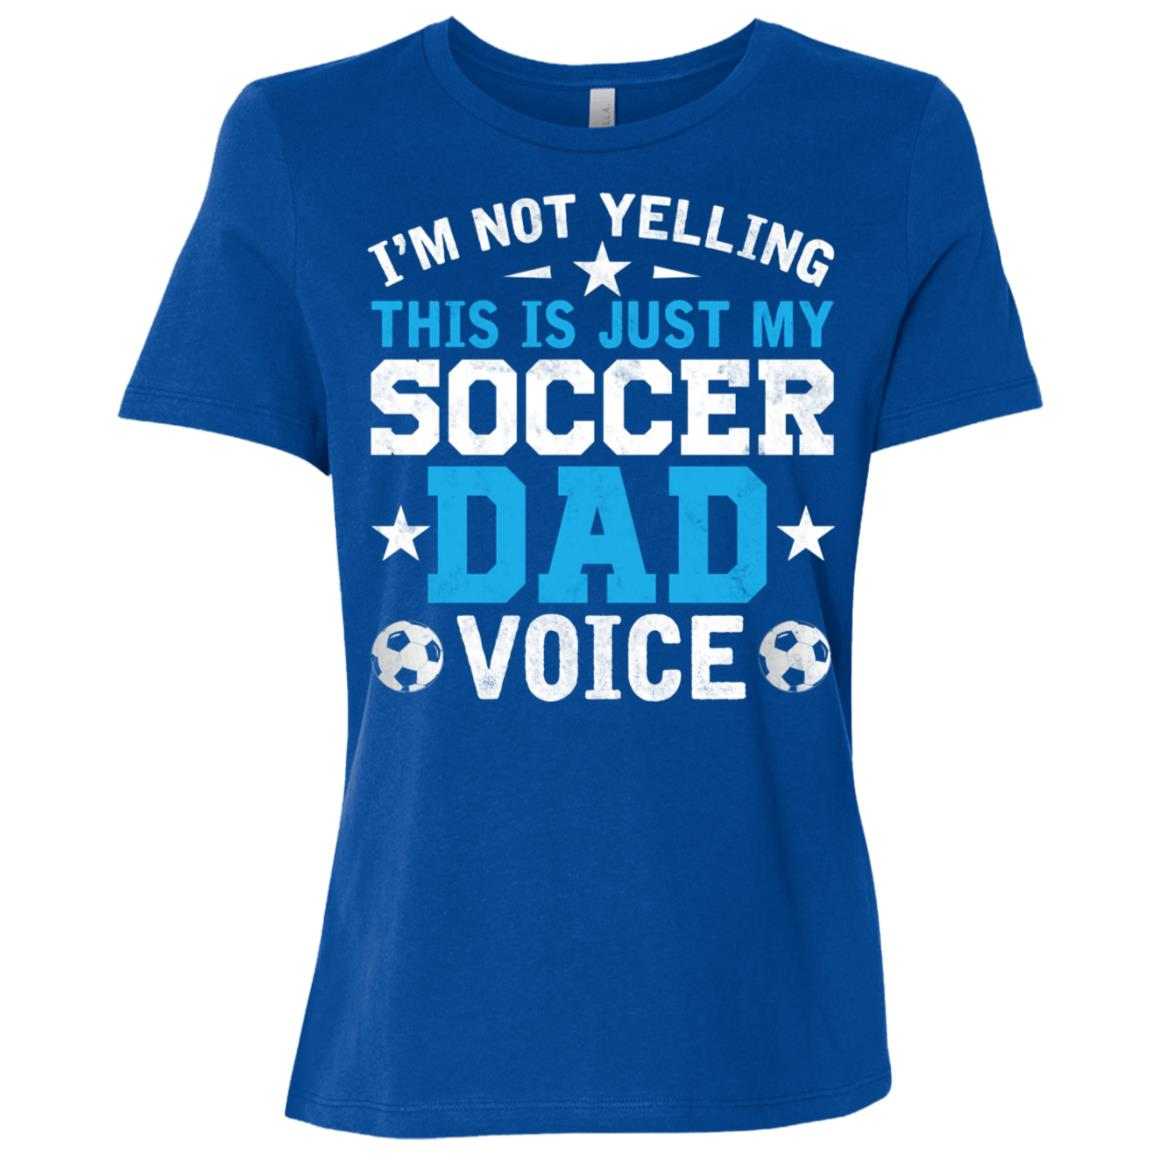 I'm Not Yelling This Is Just My Soccer Dad Voice Women Short Sleeve T-Shirt